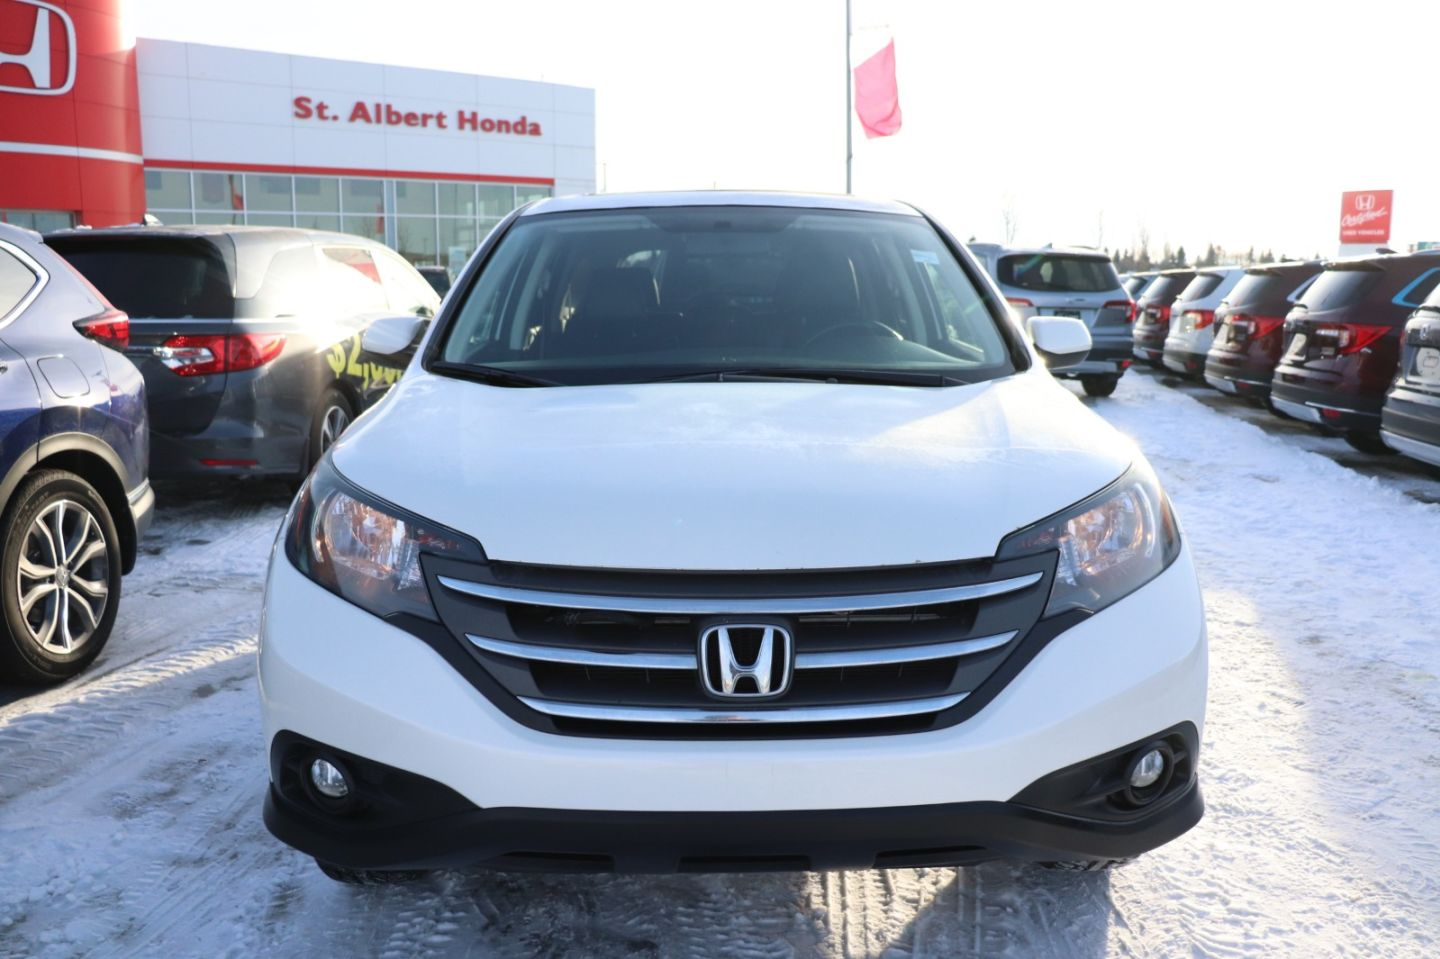 2013 Honda CR-V EX-L for sale in St. Albert, Alberta